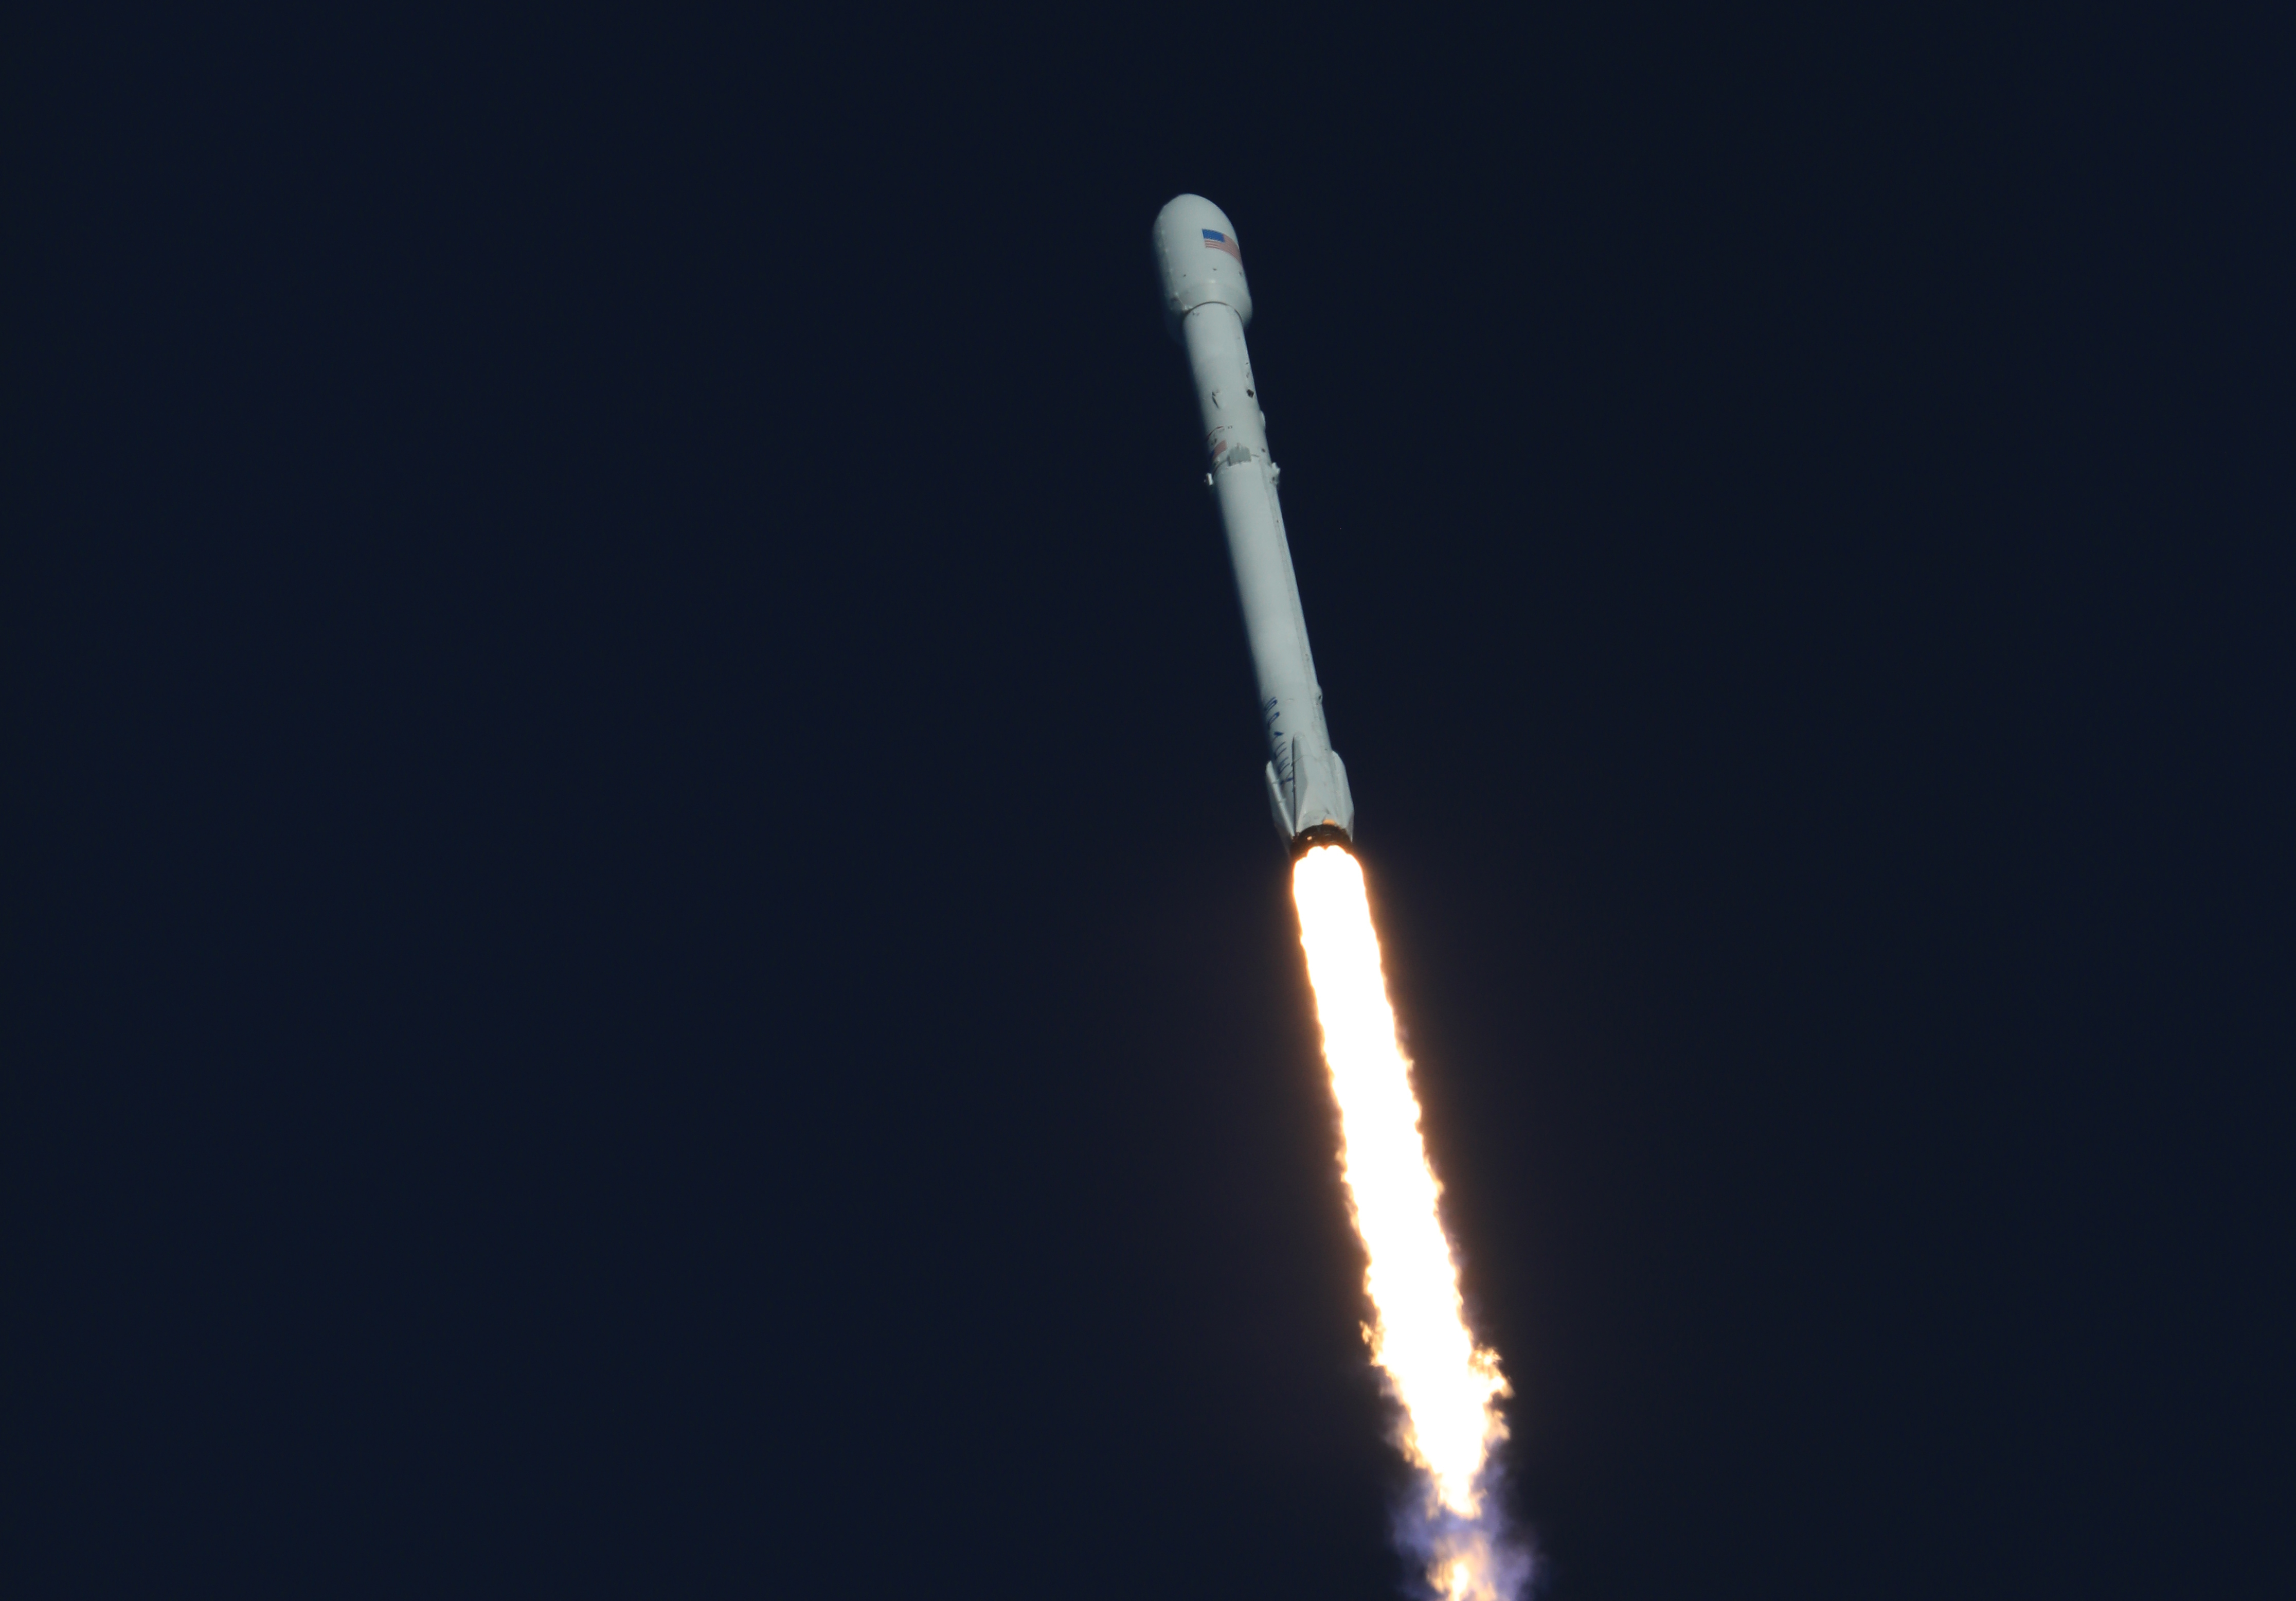 A SpaceX Falcon 9 rocket soars upward after lifting off from Space Launch Complex 40 at Cape Canaveral Air Force Station in Florida, carrying NASA's Transiting Exoplanet Survey Satellite (TESS). Liftoff was at 6:51 p.m. EDT.